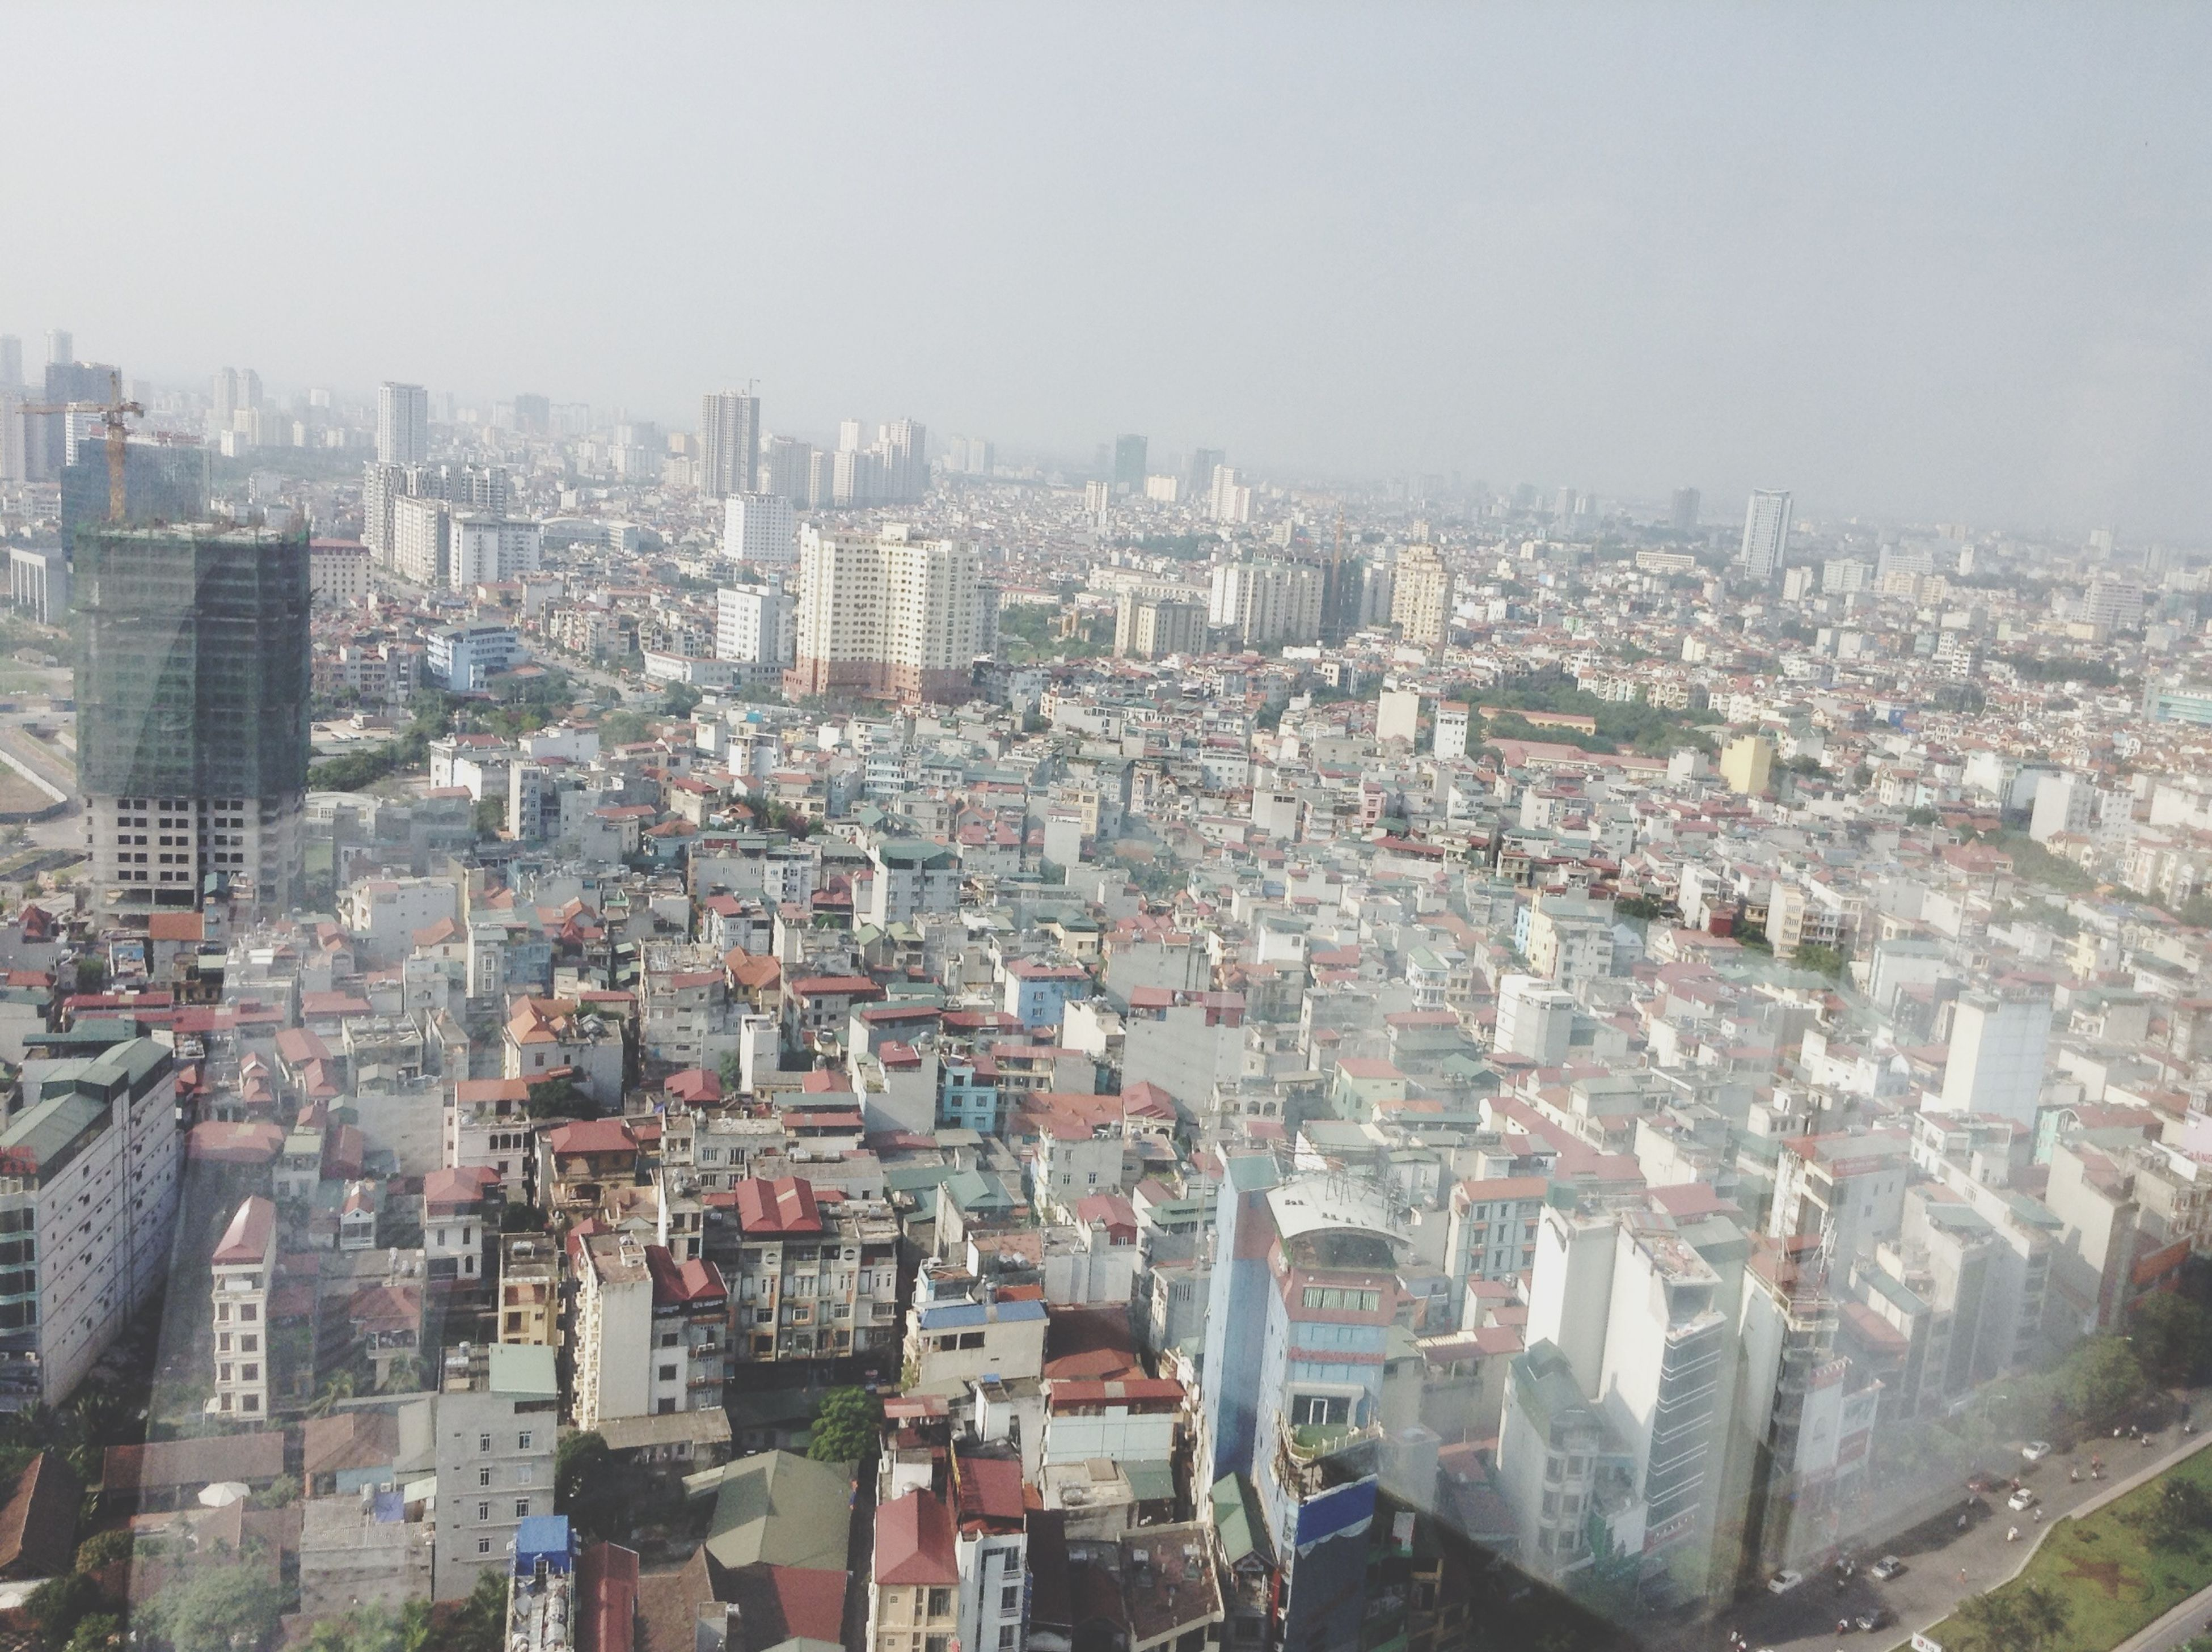 building exterior, architecture, built structure, cityscape, crowded, city, residential district, high angle view, clear sky, residential structure, residential building, copy space, roof, community, no people, day, outdoors, skyscraper, sky, house